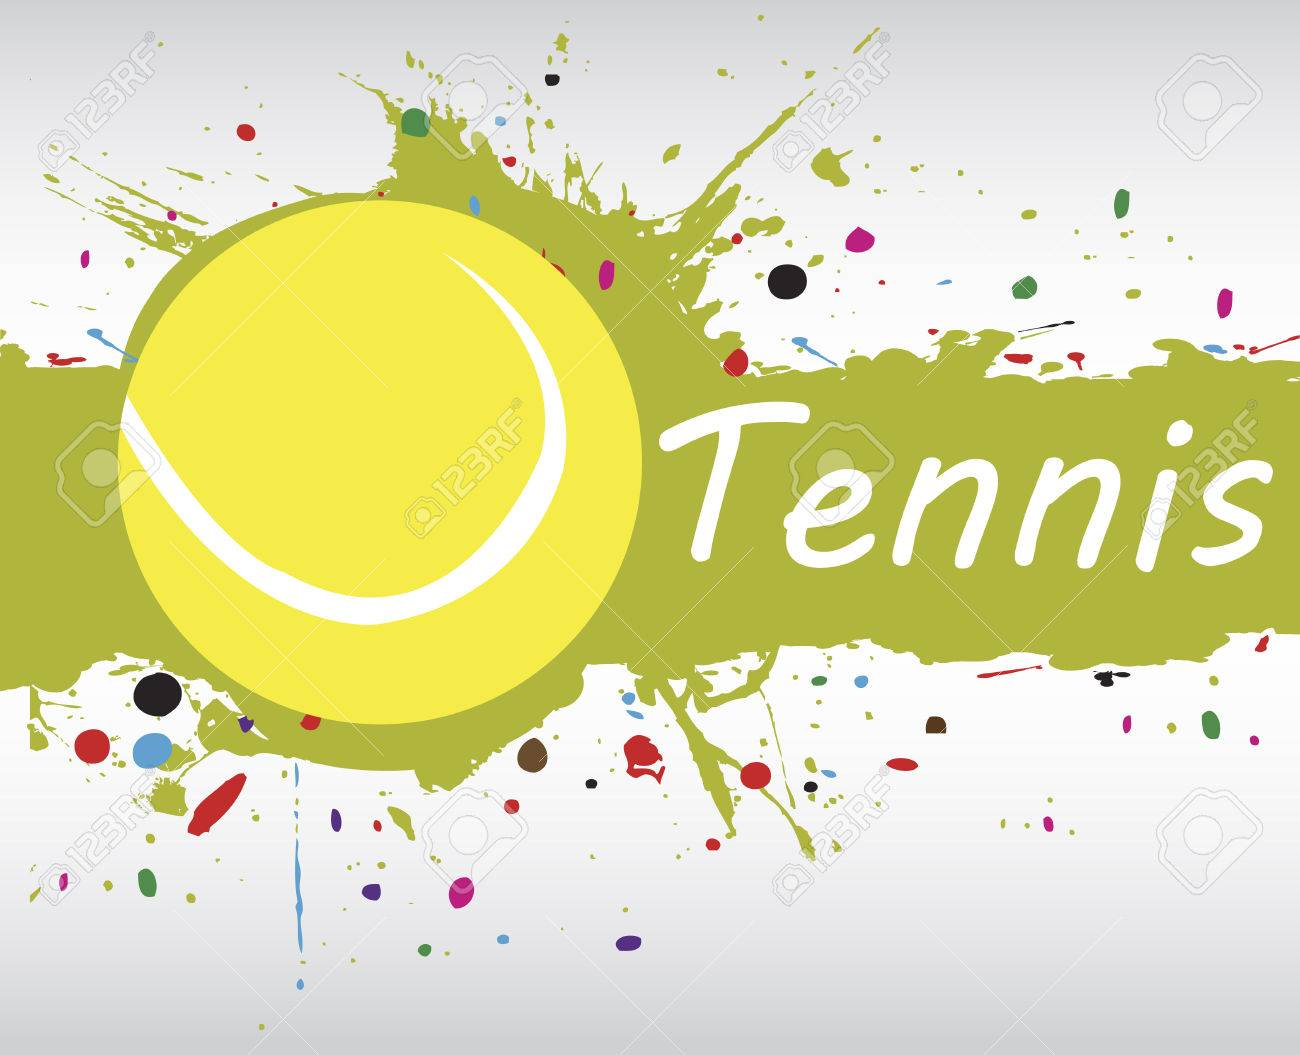 Abstract Green Background With Colorful Splash Tennis Banner Royalty Free Cliparts Vectors And Stock Illustration Image 41786304